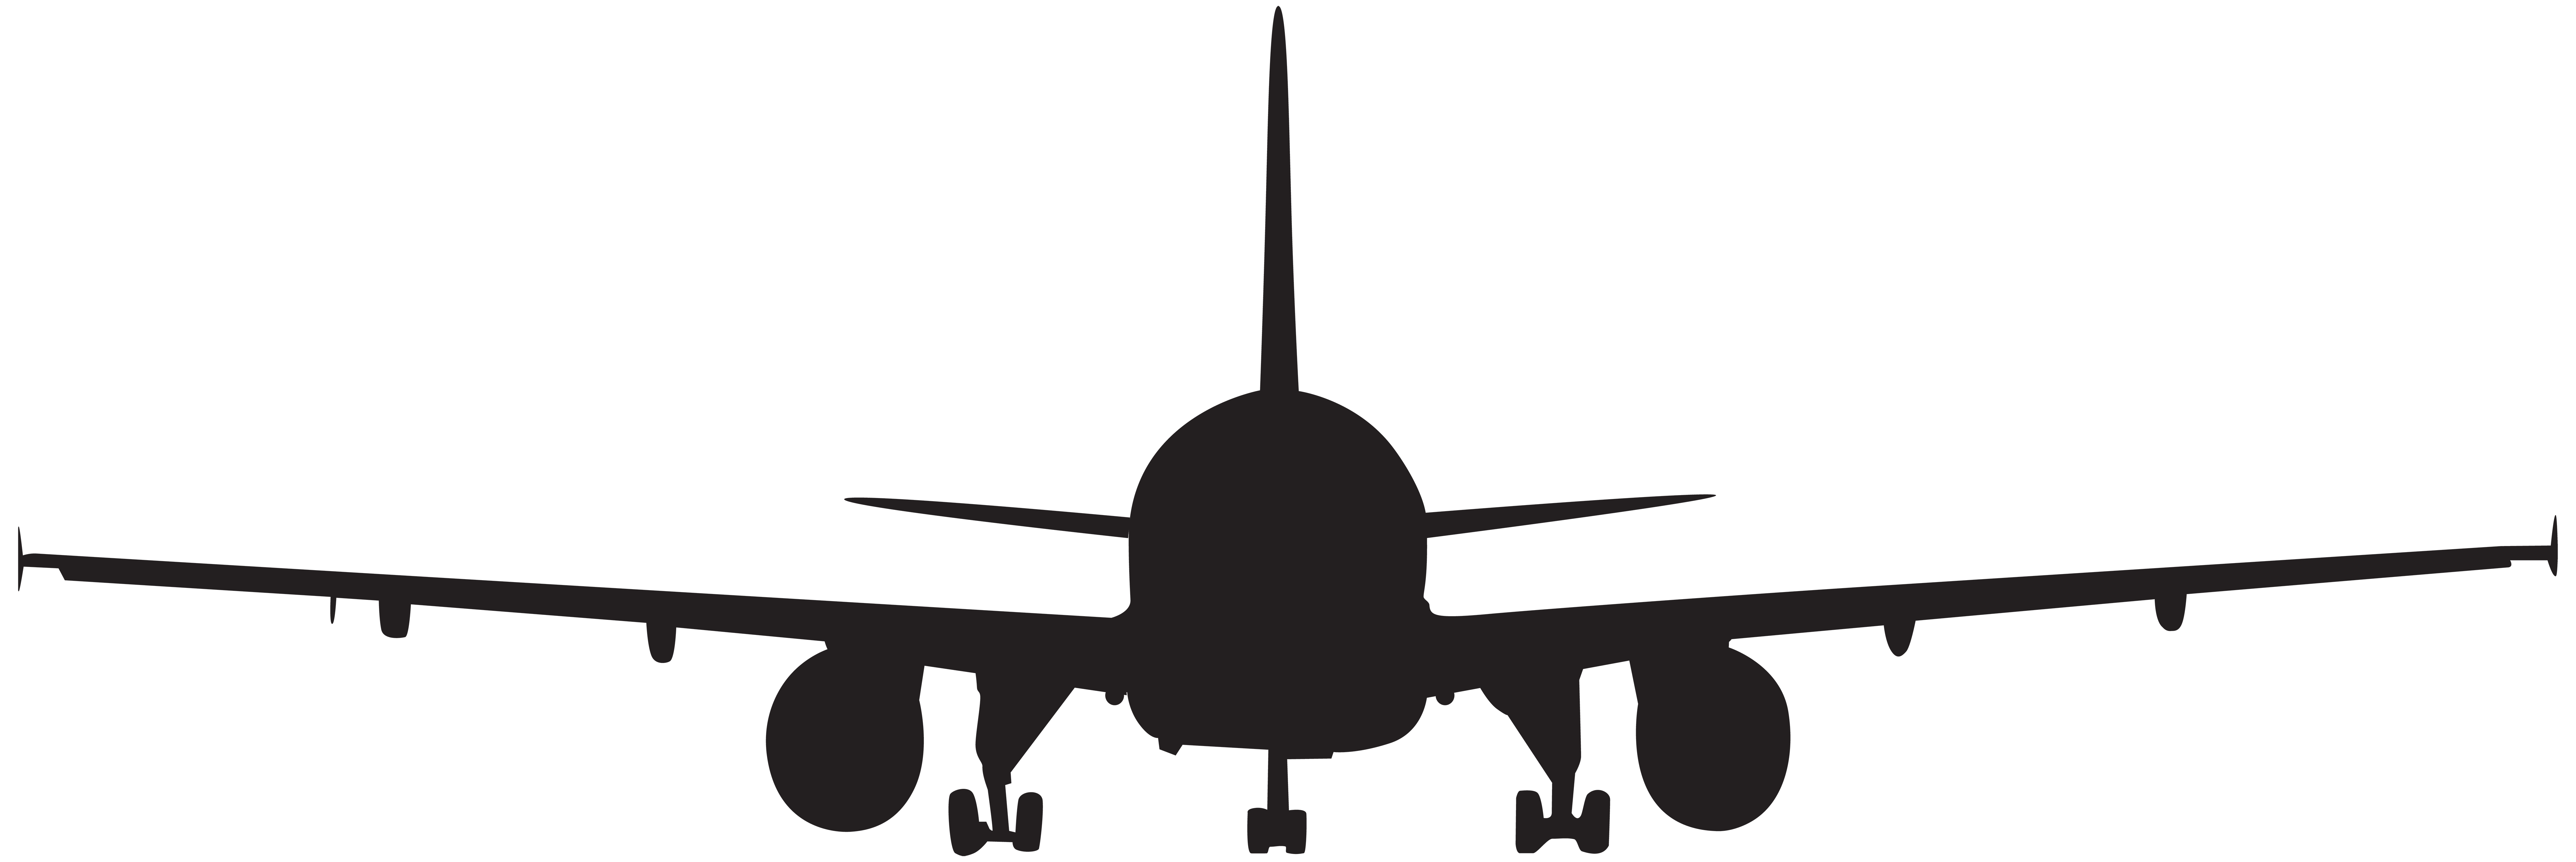 Airplane silhouette clip art. Plane clipart front